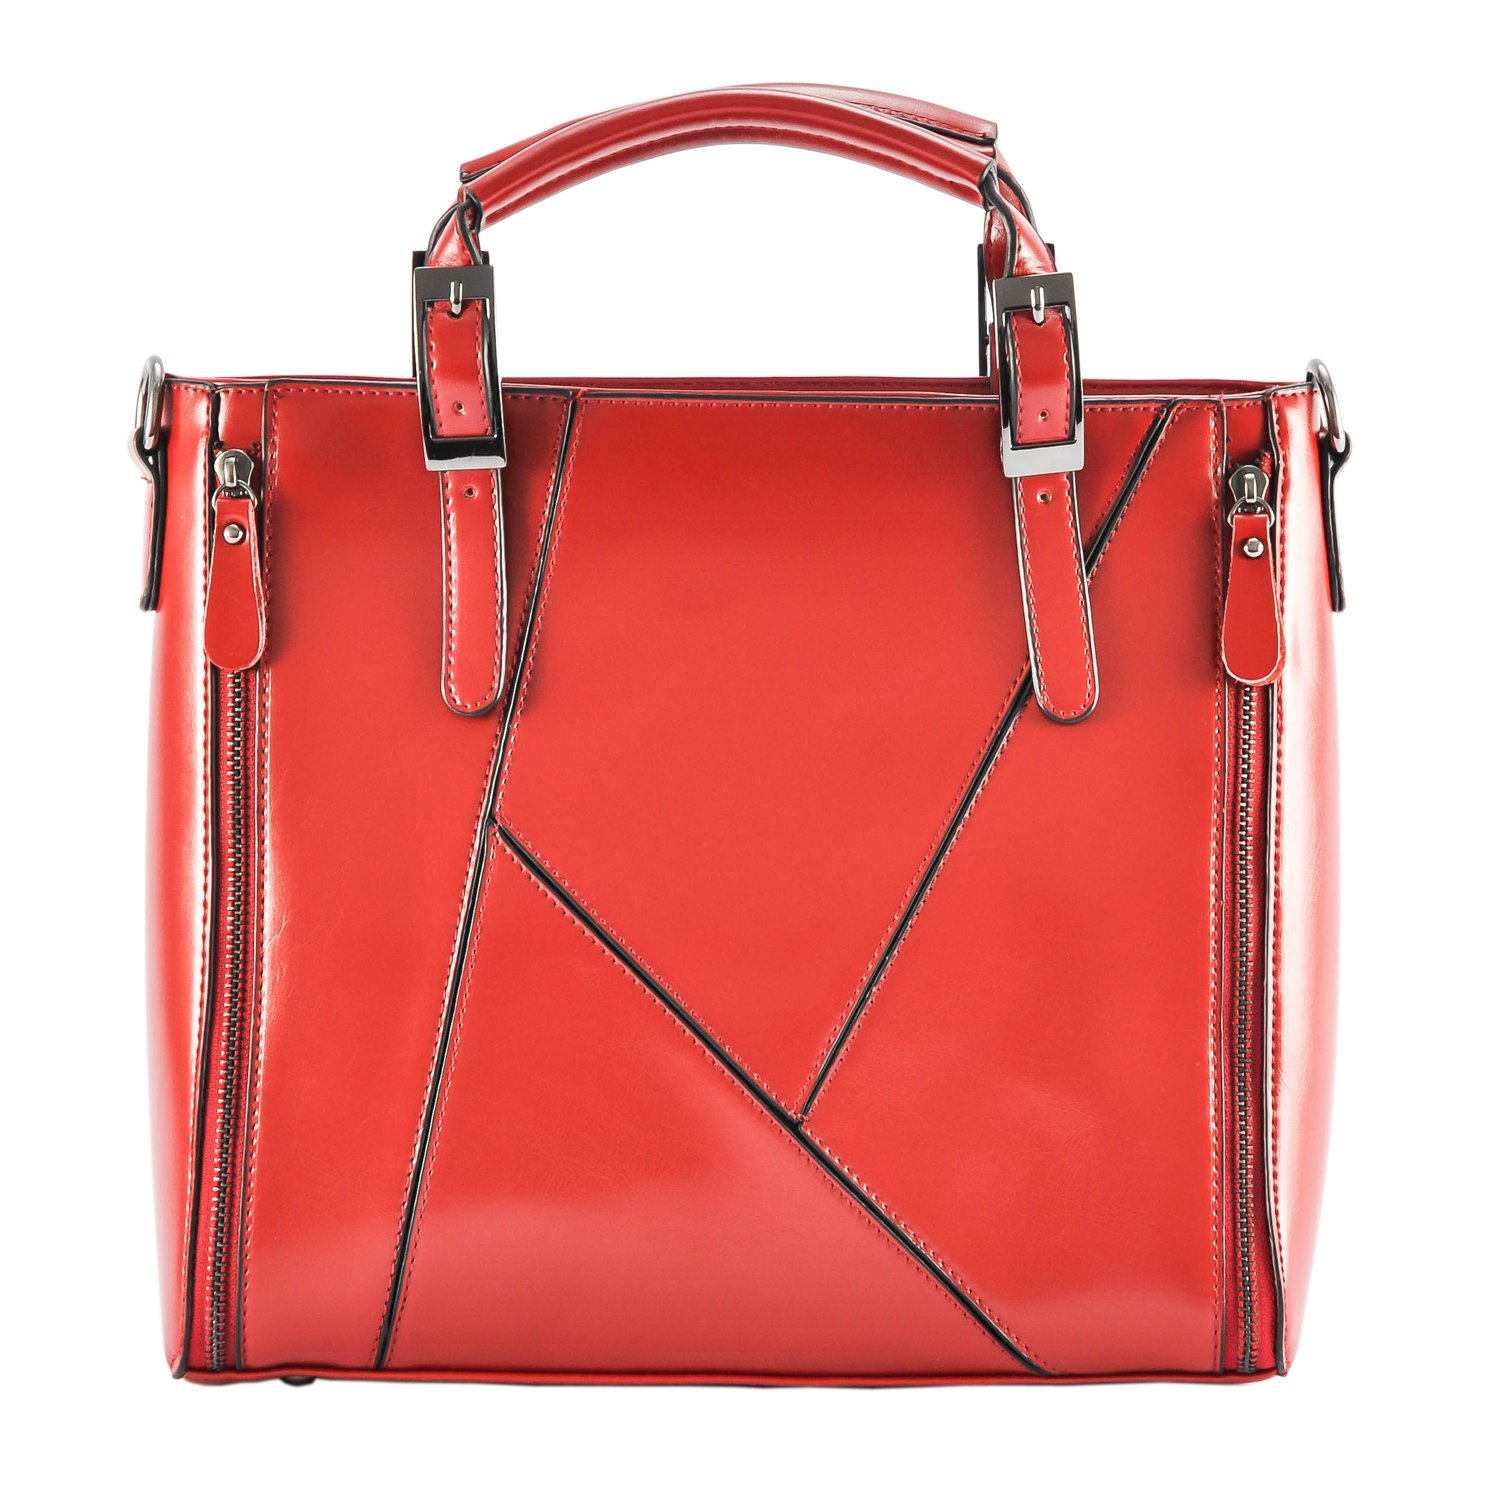 65fc83b235c5f Qianmufan Women Fashion Designer Handbag Top Handle Bag Shoulder Bag Large  Wine Red 70%OFF